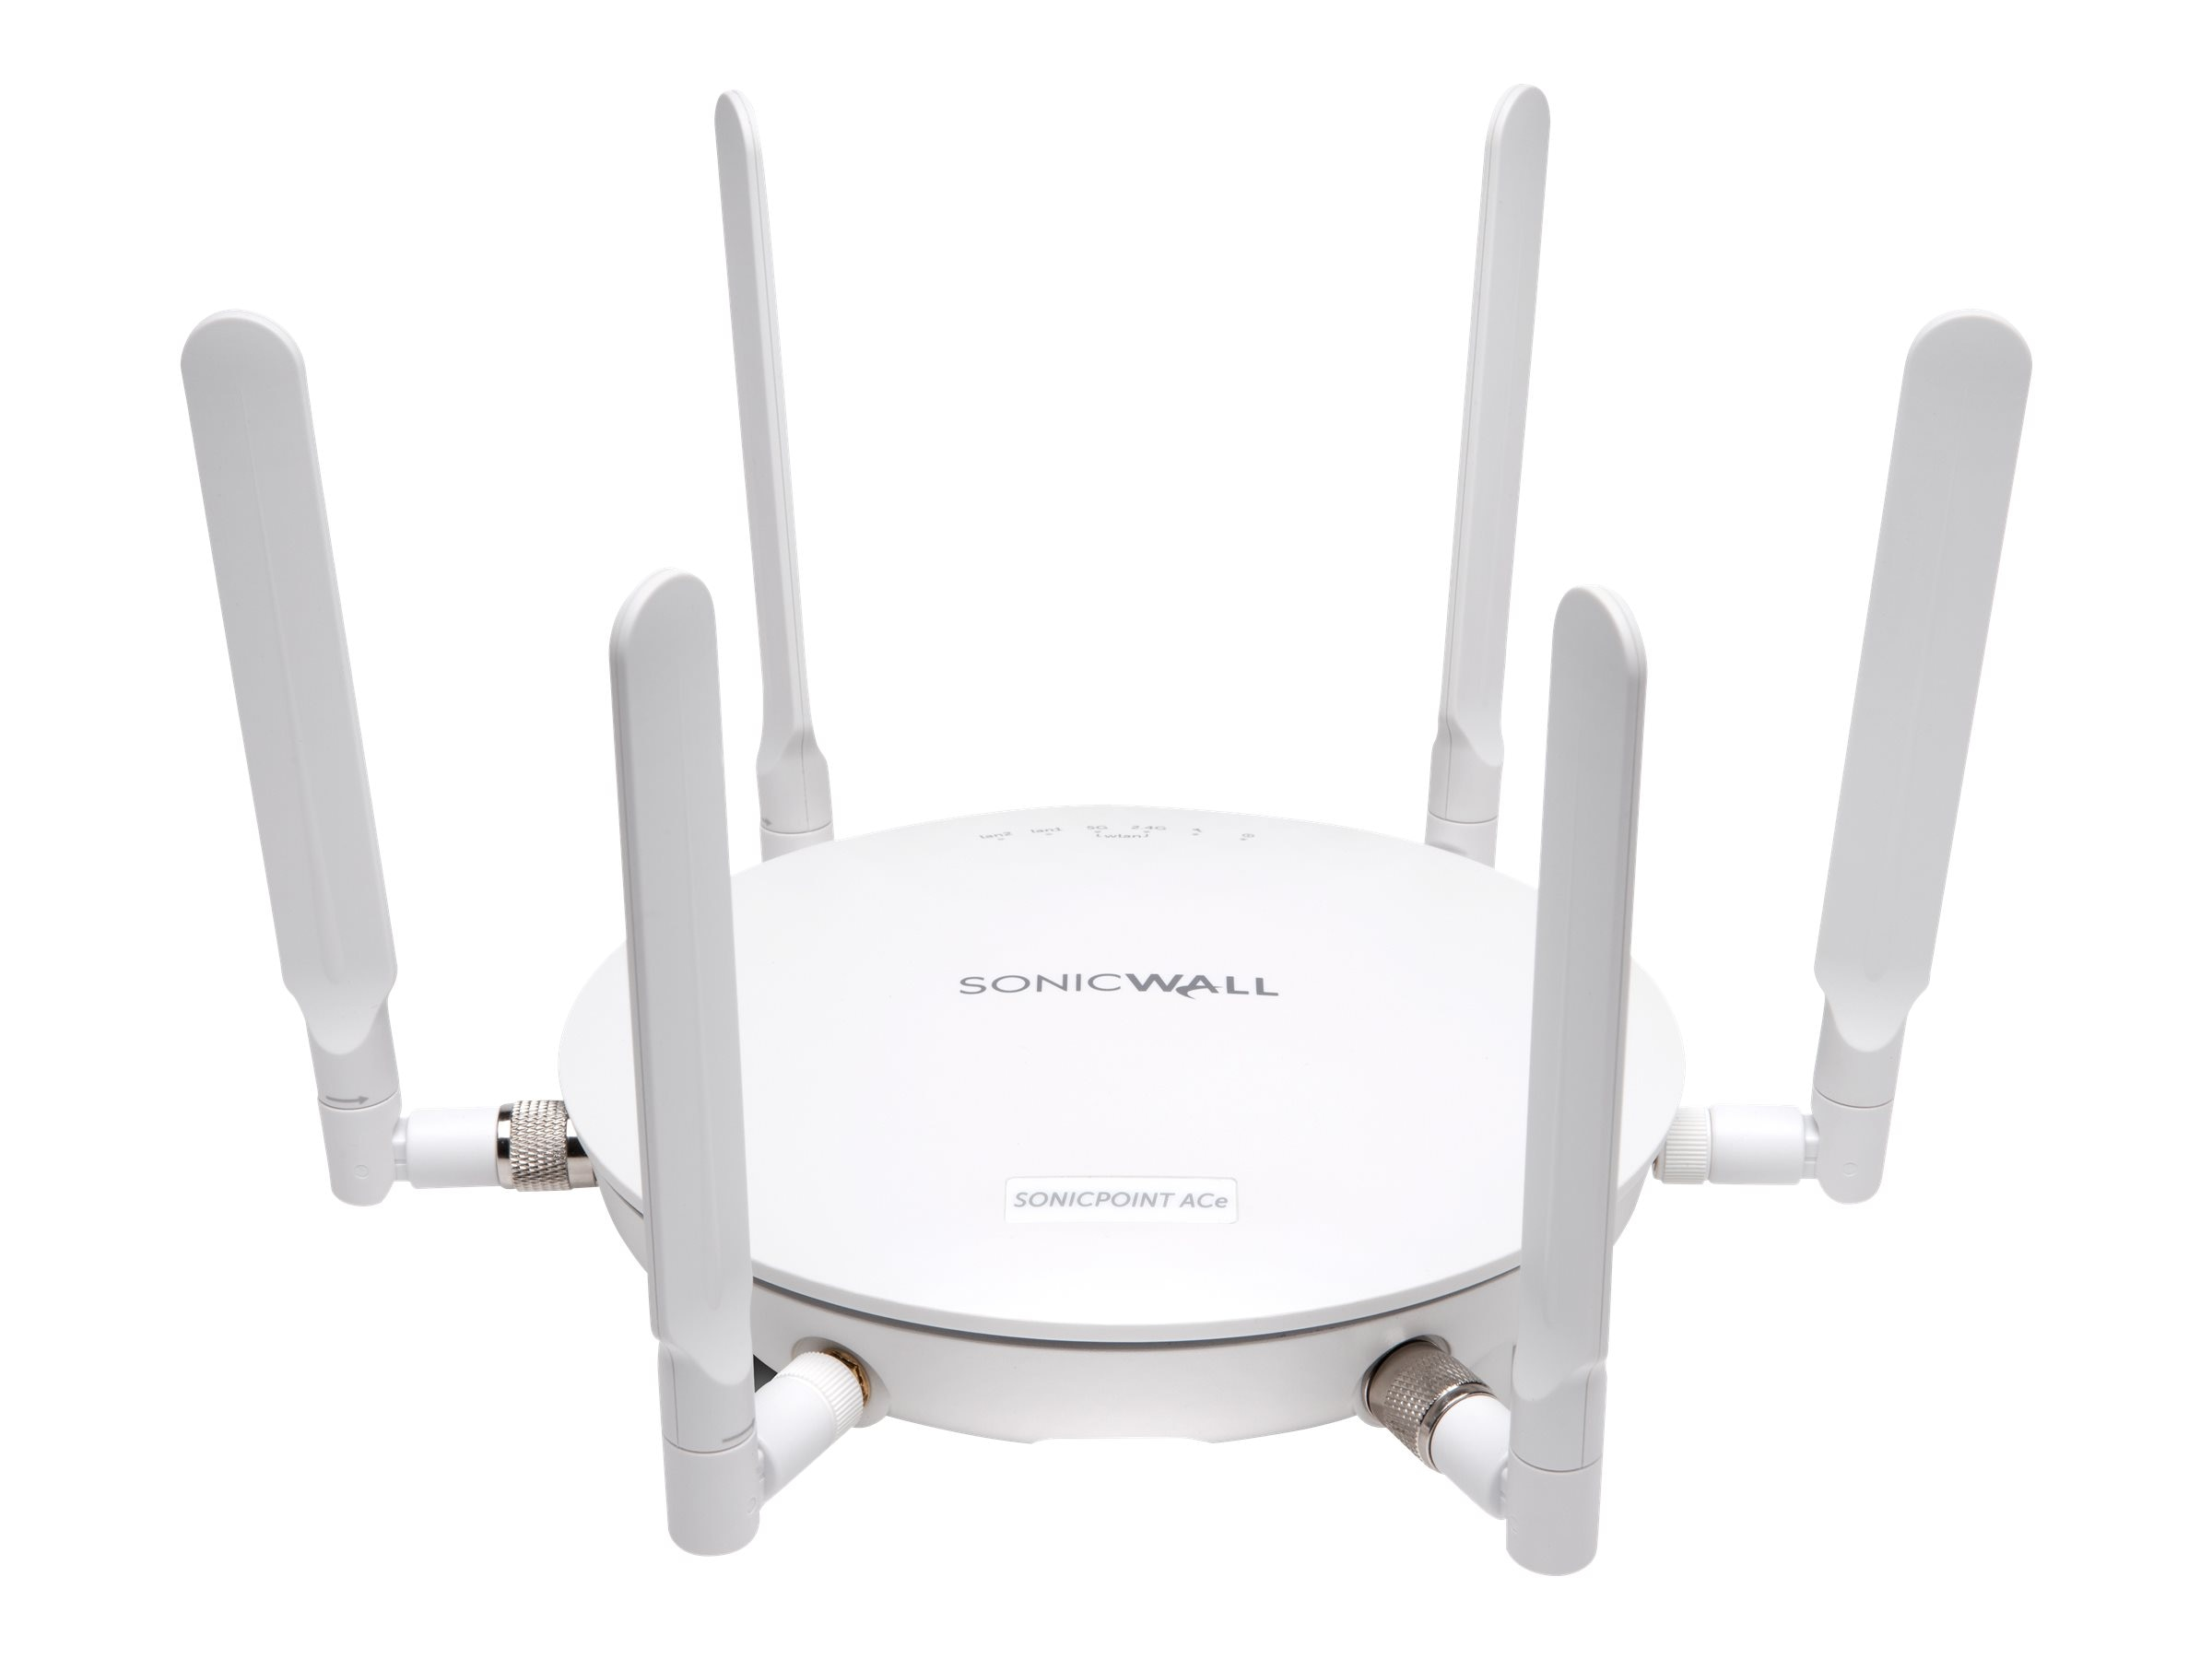 SonicWALL 4-Pack SonicPoint ACe with 24x7 Support Secure Upgrade (3 Years)